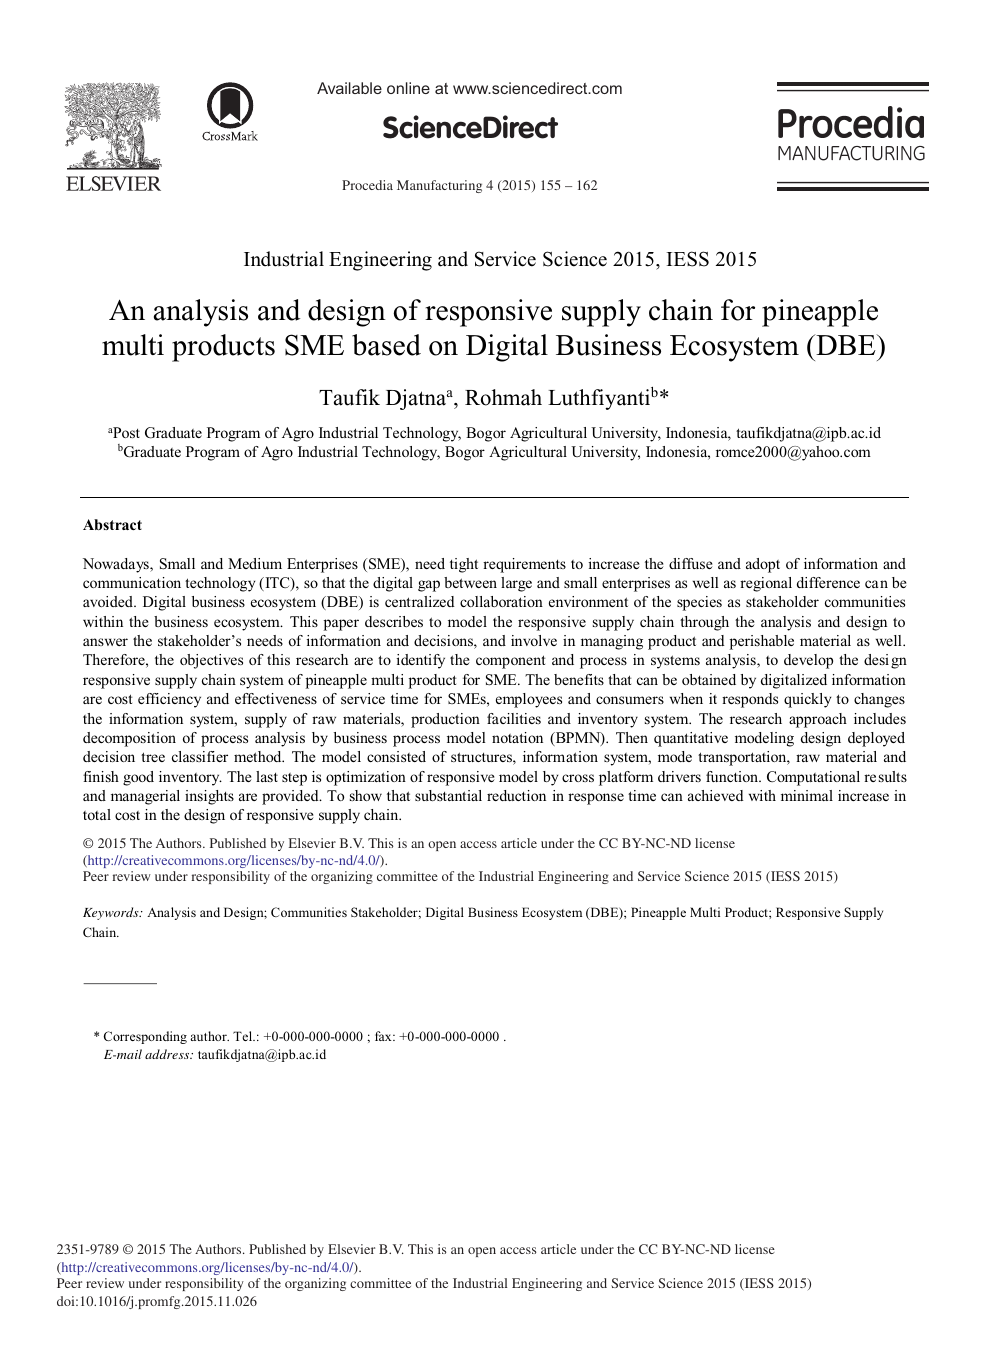 An Analysis And Design Of Responsive Supply Chain For Pineapple Multi Products Sme Based On Digital Business Ecosystem Dbe Topic Of Research Paper In Agriculture Forestry And Fisheries Download Scholarly Article